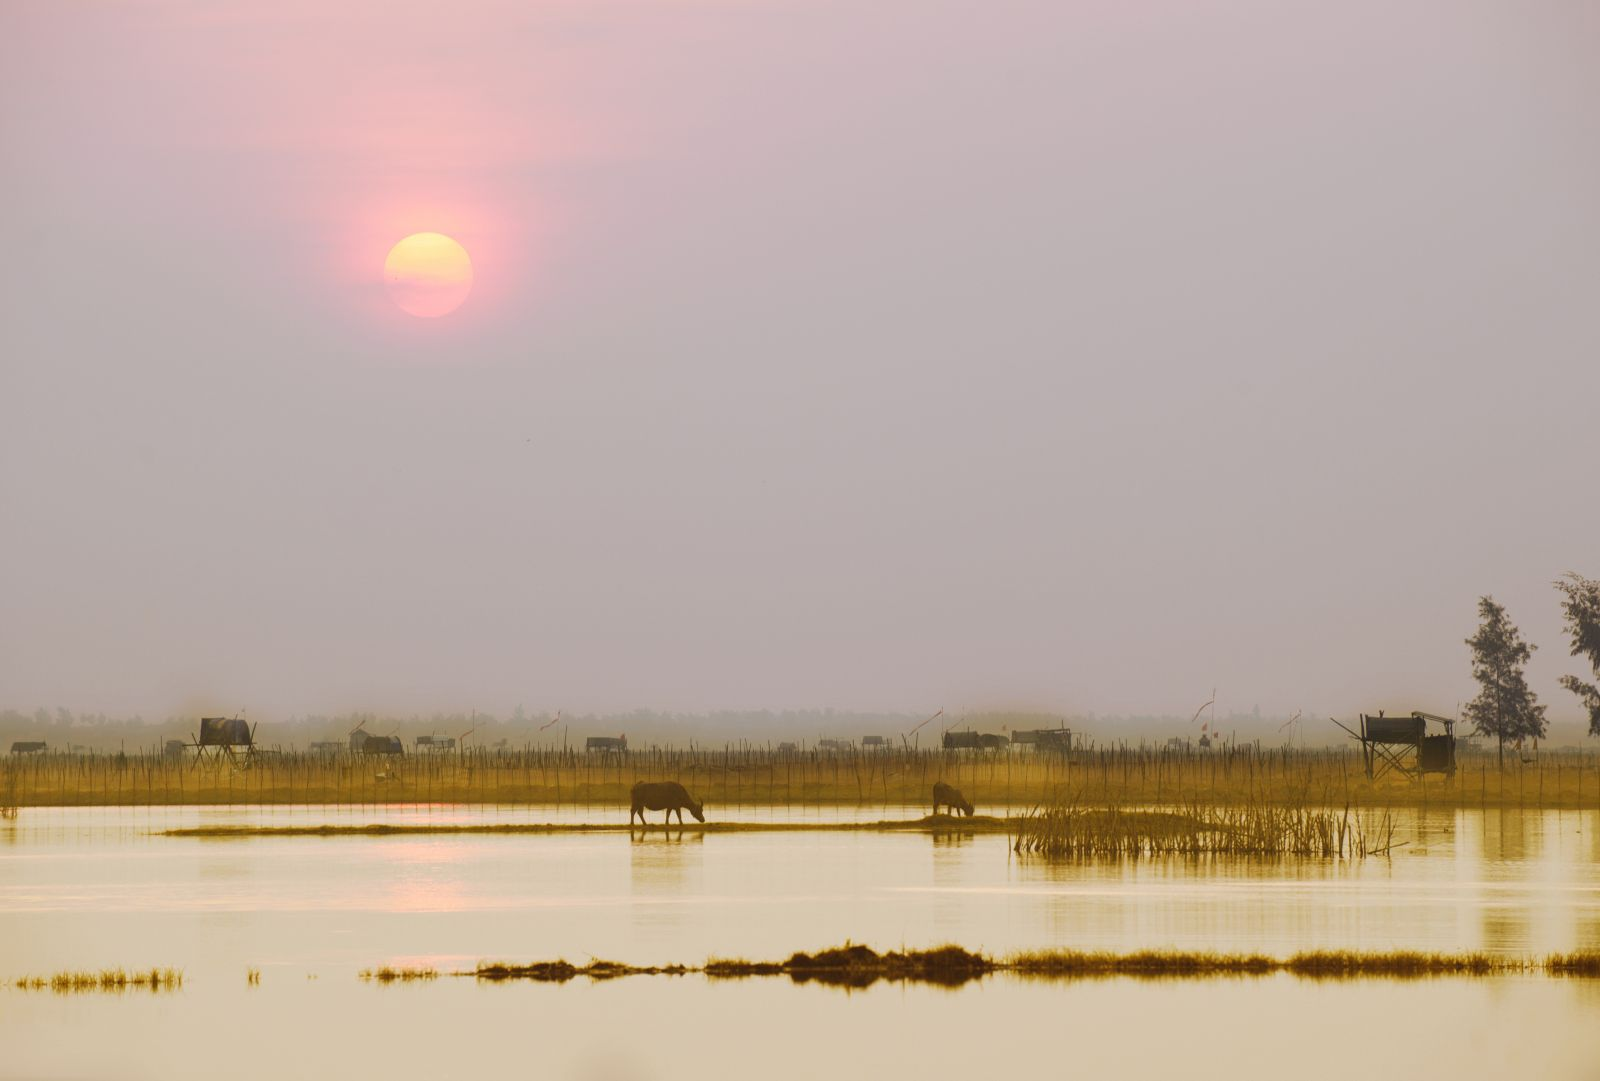 The sun rising in autumn is also soft and surprisingly peaceful, Autumn dawn in Chuon lagoon